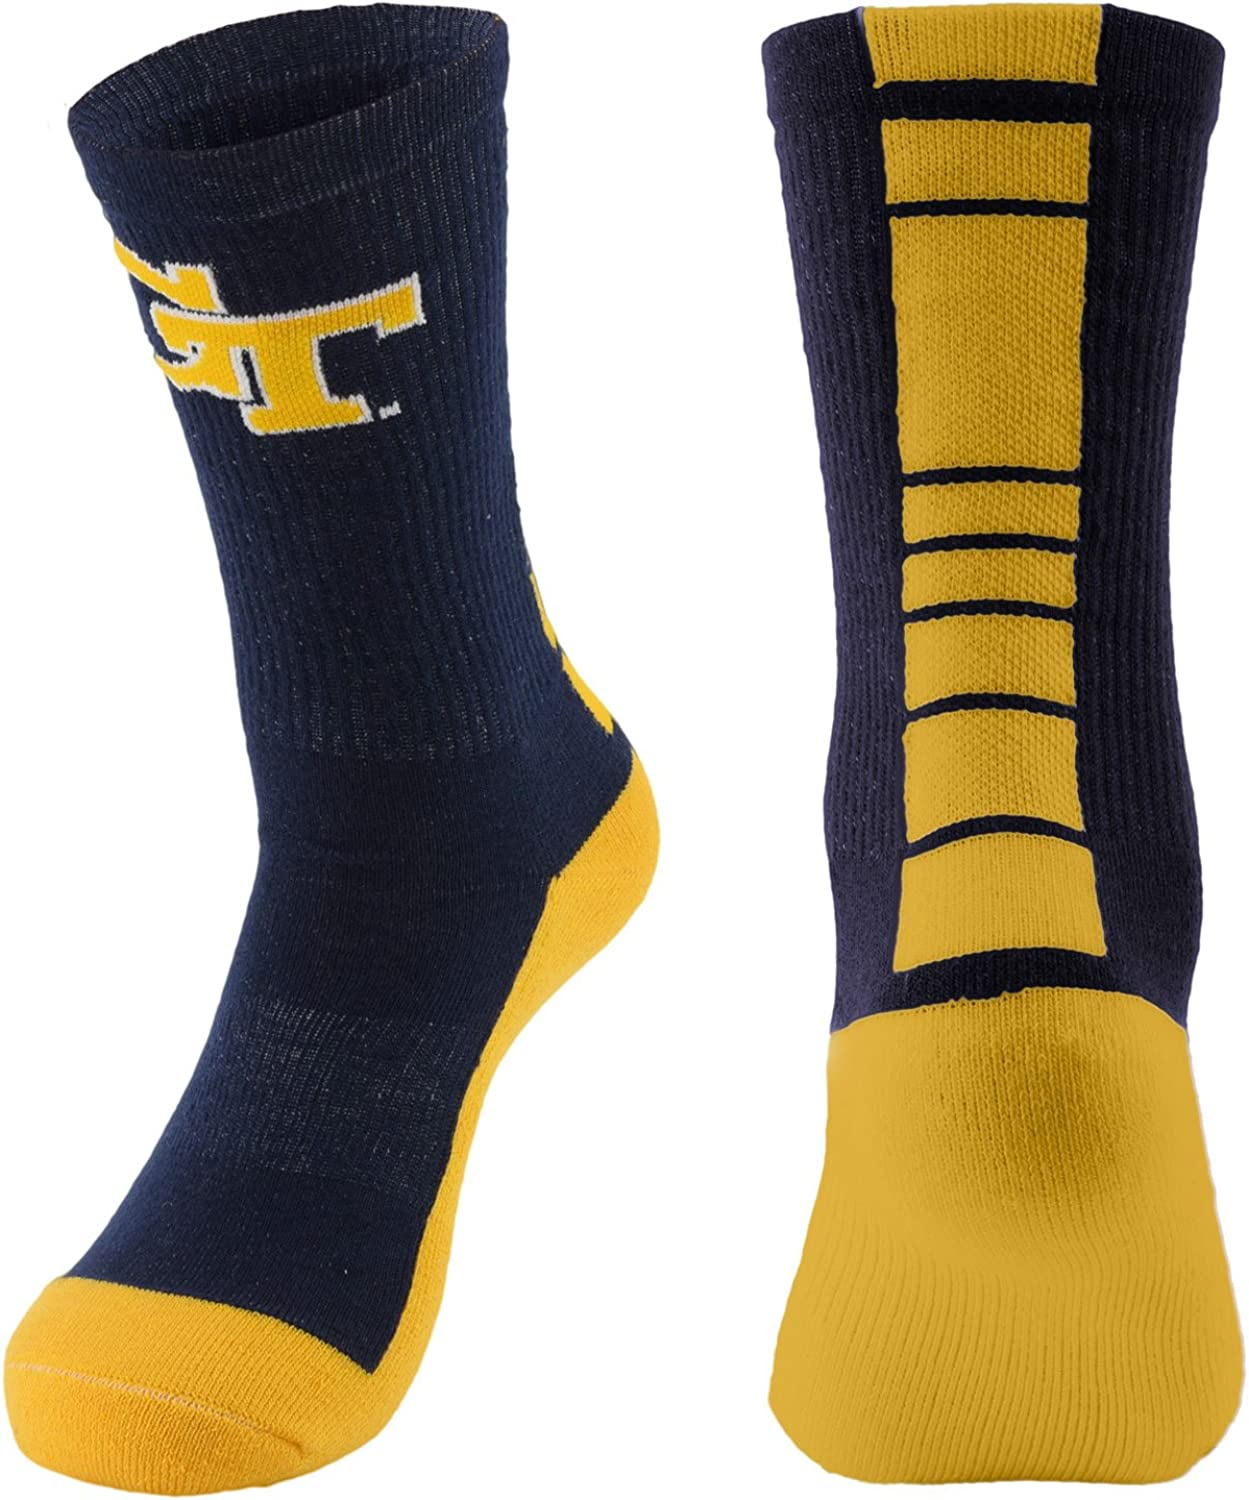 NCAA (TEAM) Men's Made in the USA Polytek Champ Performance Crew Socks with Wicking Material and Extra Cushion